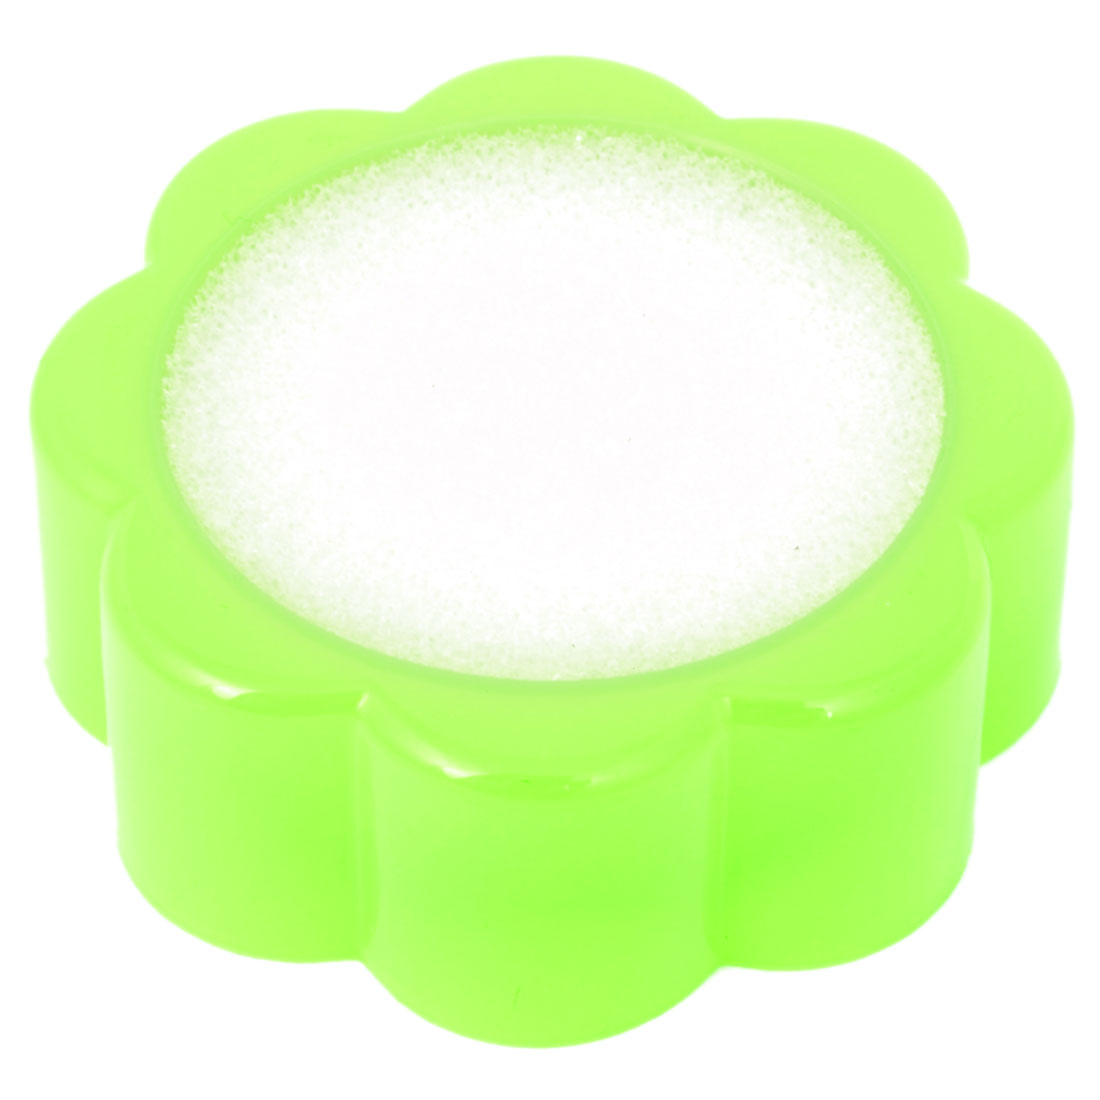 Home Washbowl Green Plastic Case Flower Shaped Sponge Finger Wetting